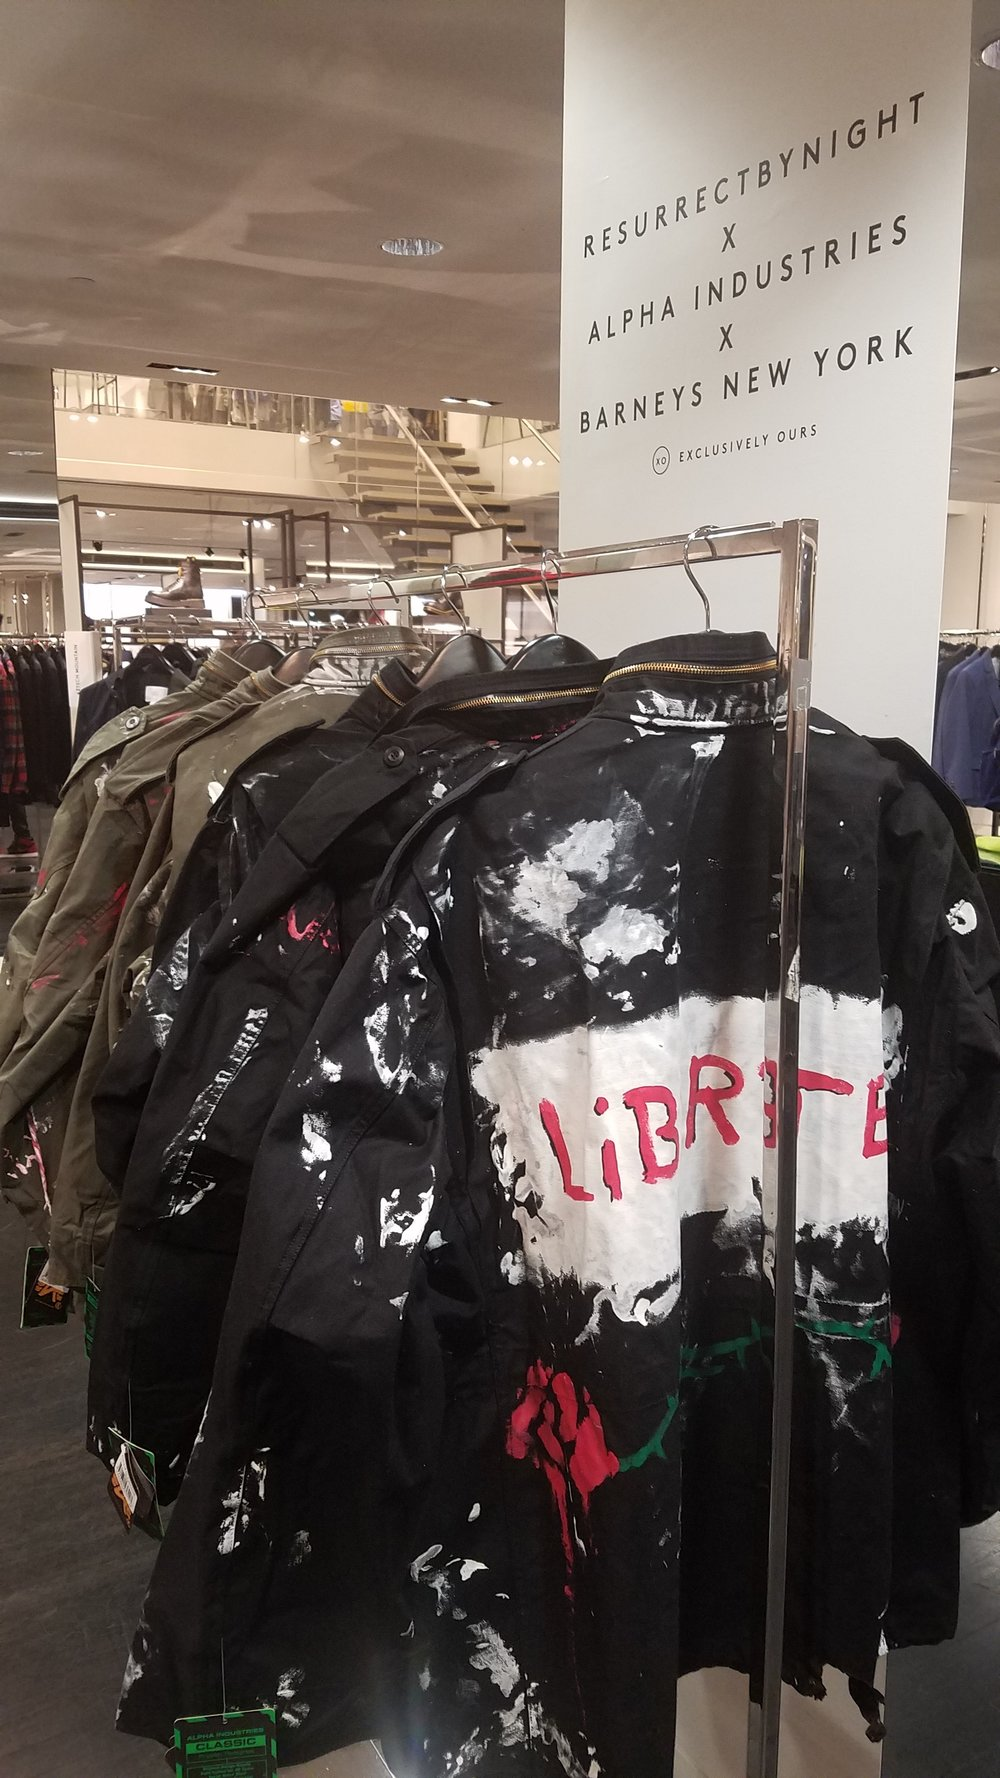 Resurrect by Night x Alpha Industries x Barneys